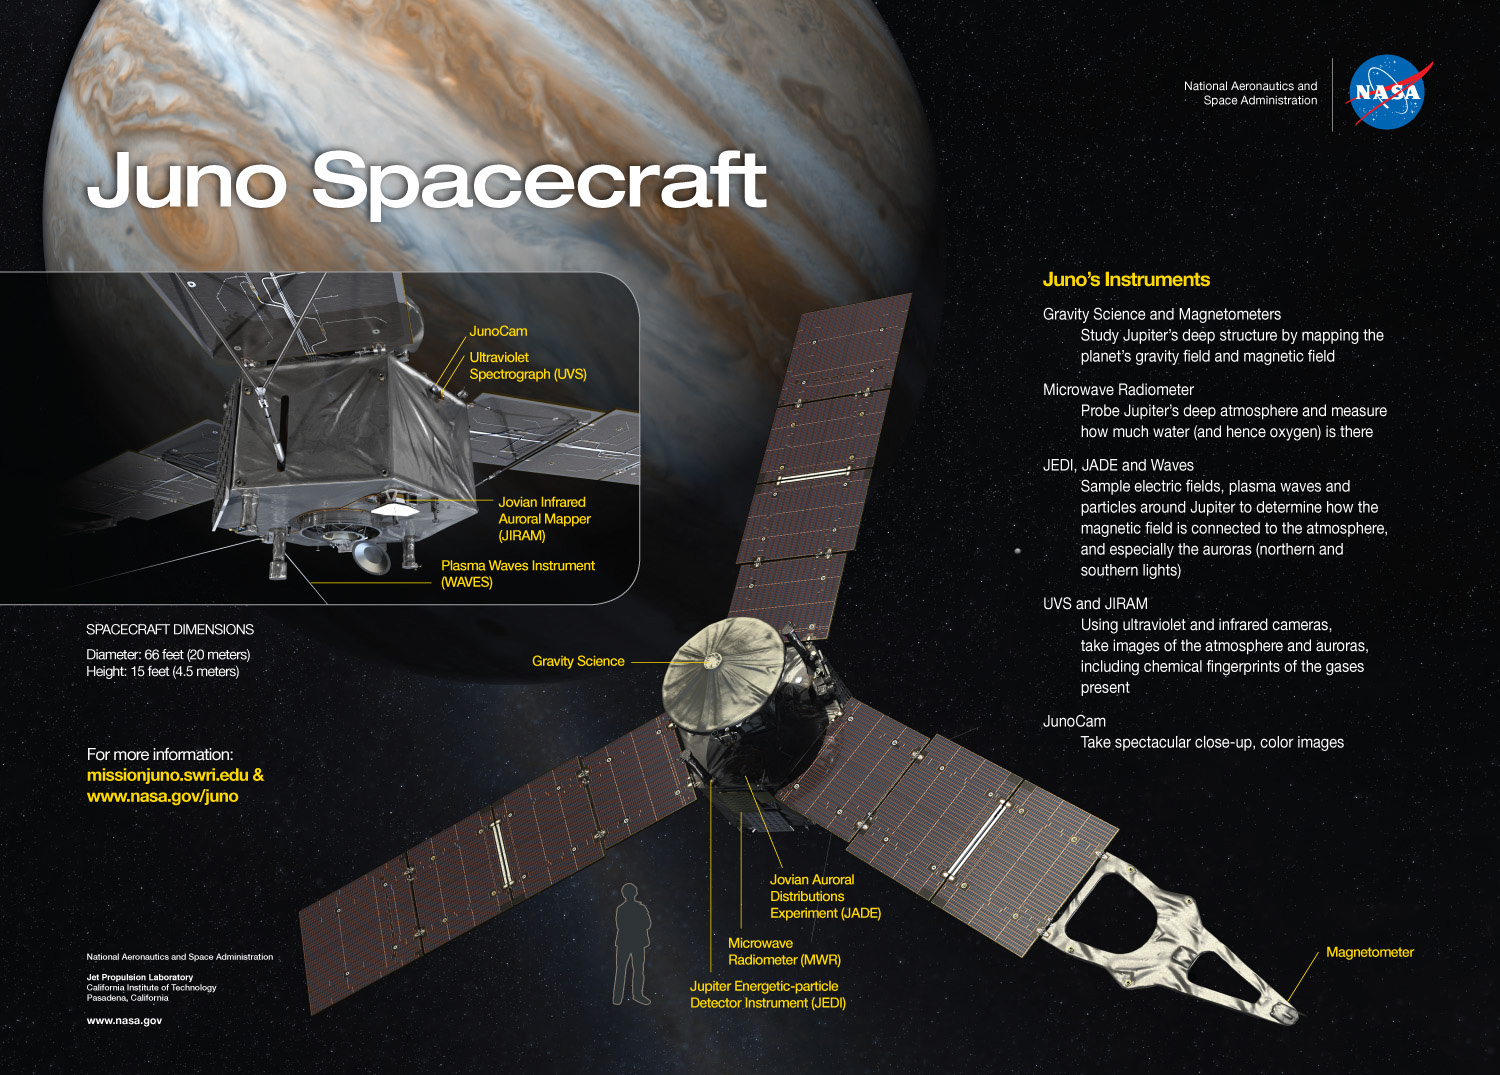 http://www.nasa.gov/images/content/567922main_junospacecraft0711.jpg